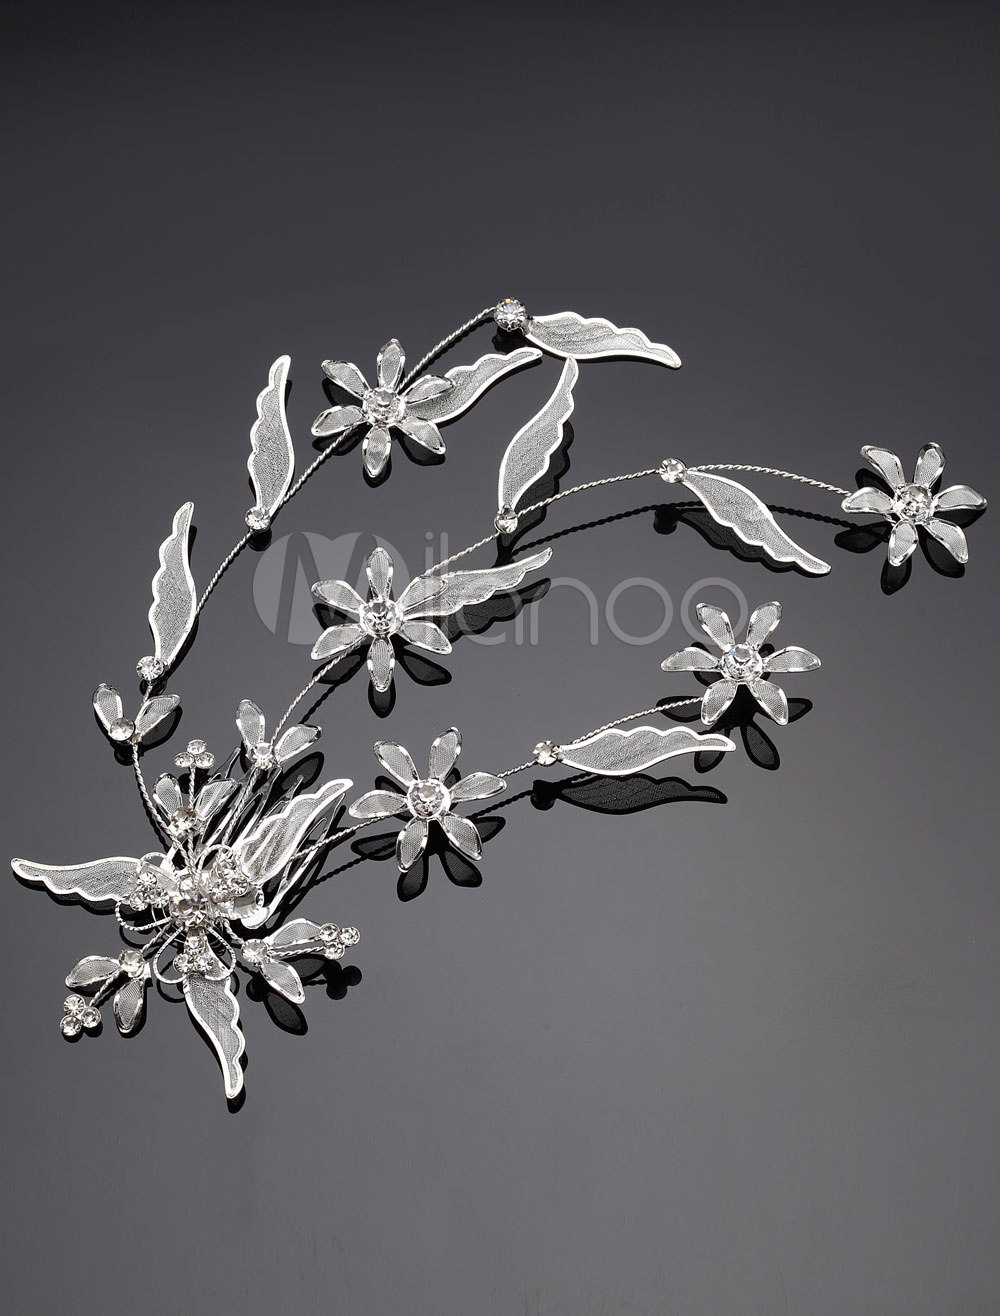 Intricate Flower and Leaf Bridal Hair Comb with Rhinestones